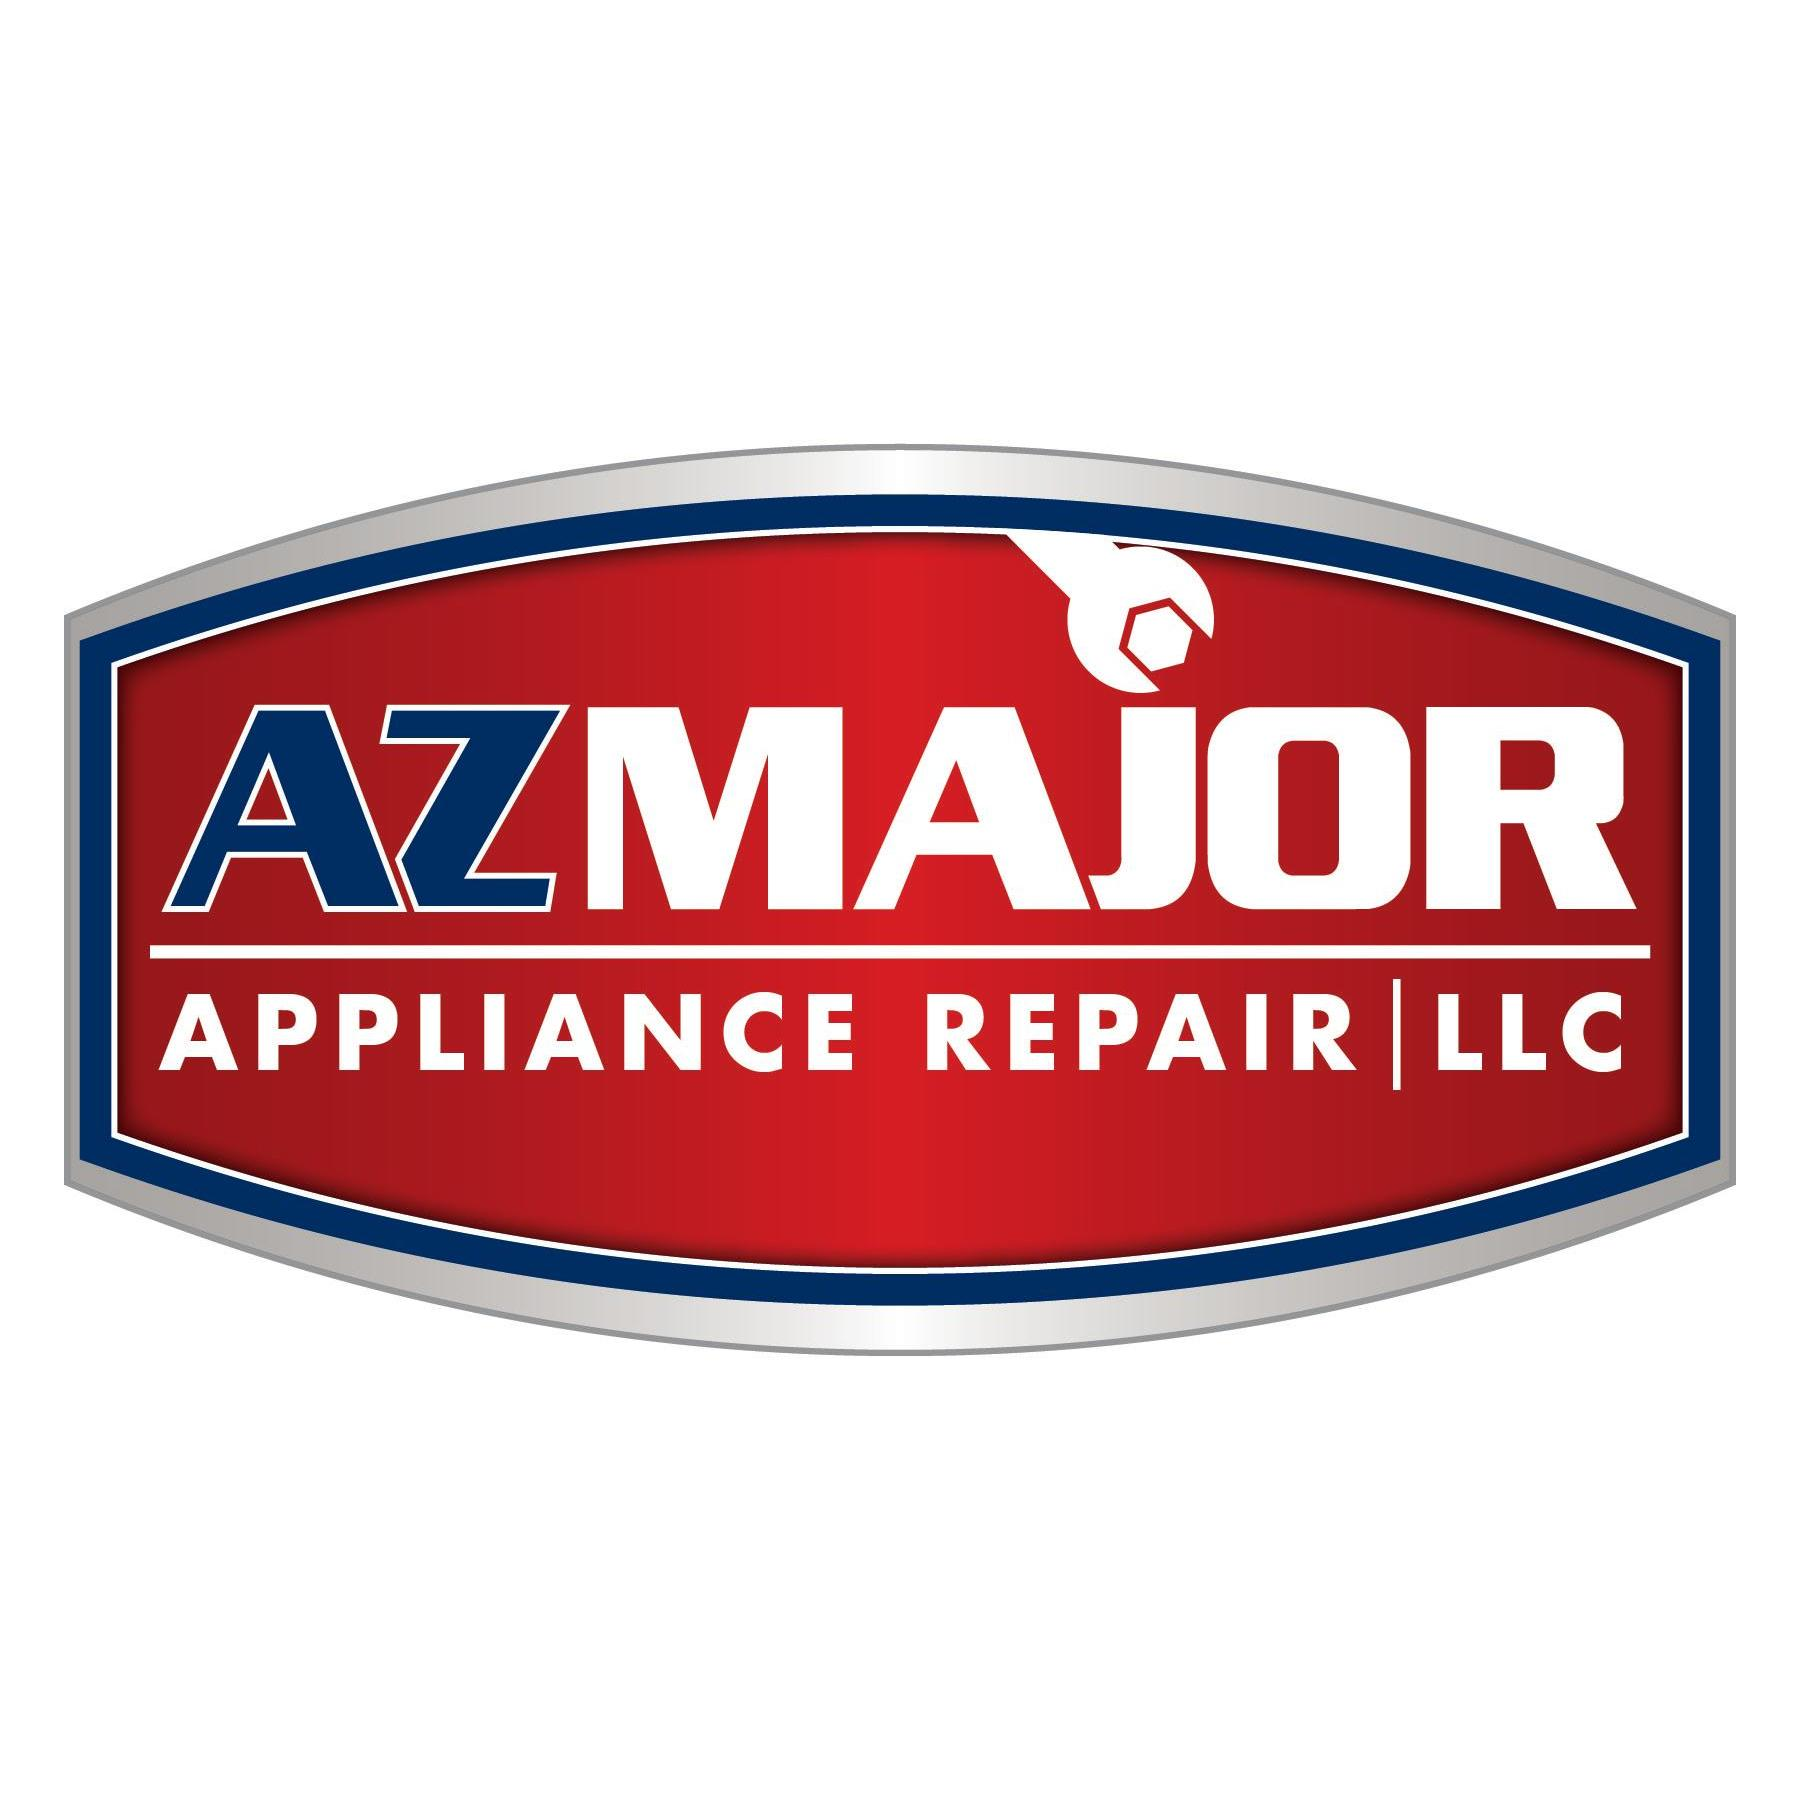 AZ Major Appliance Repair, LLC